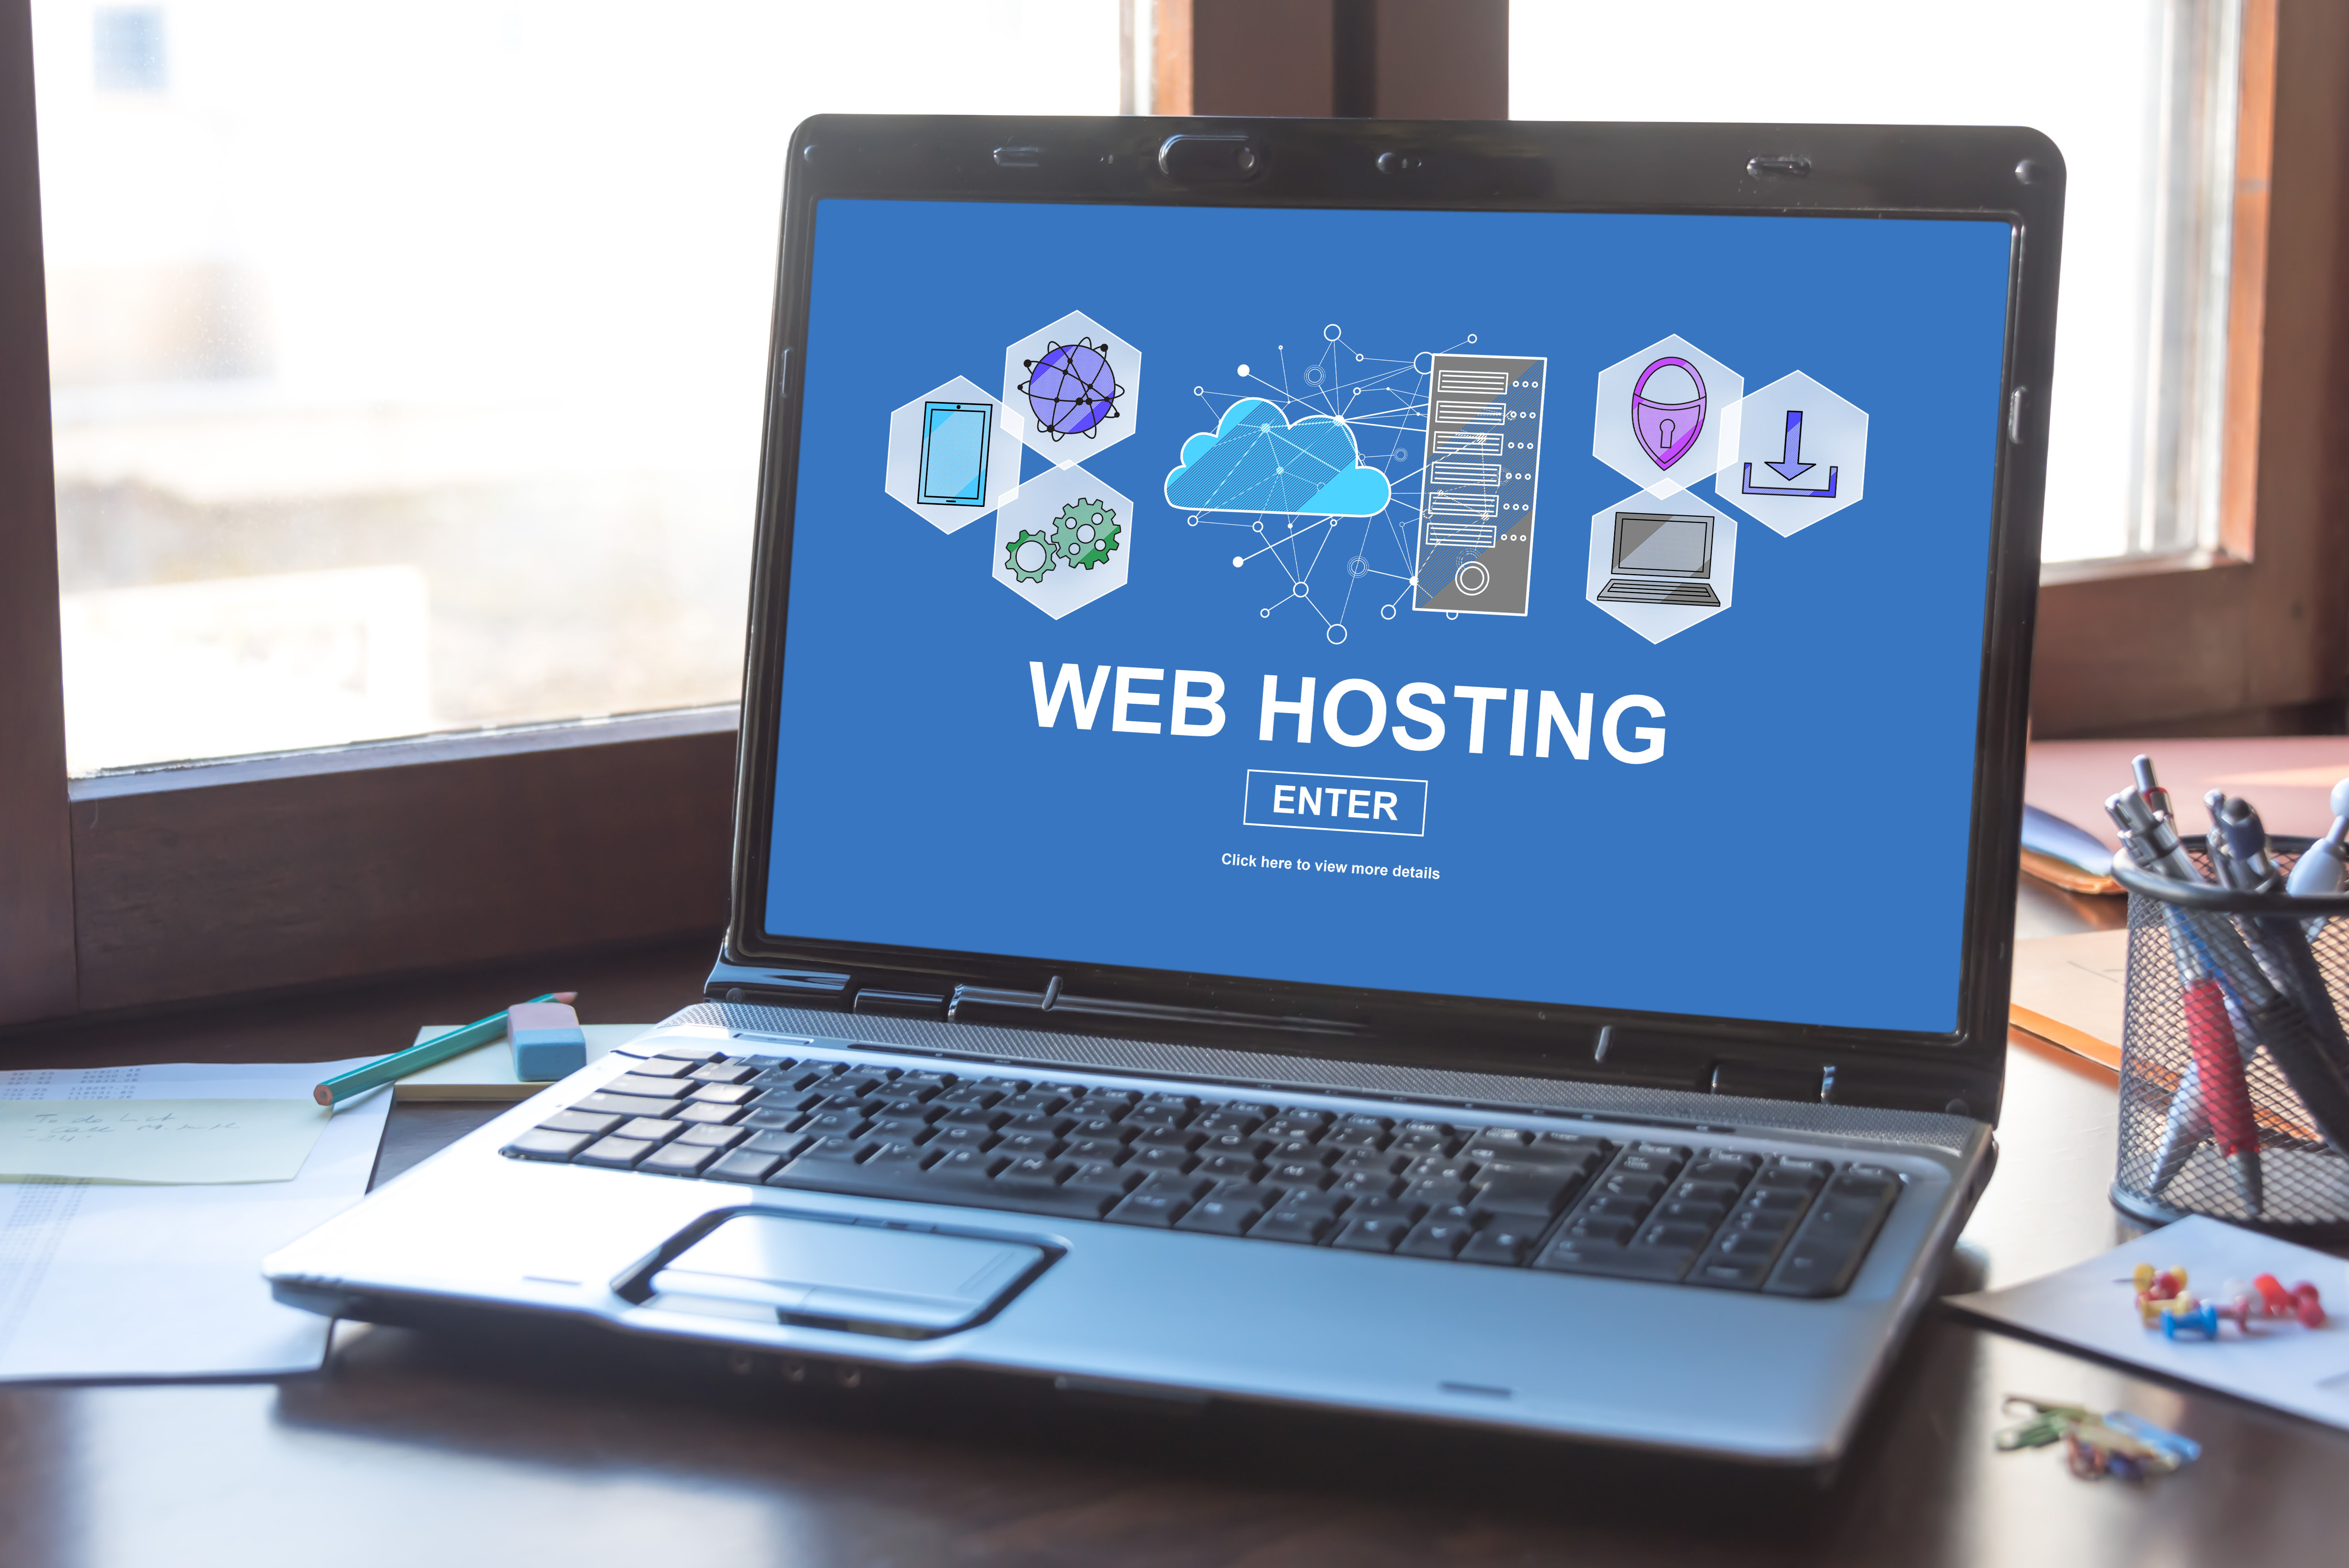 Laptop screen displaying a hosting concept